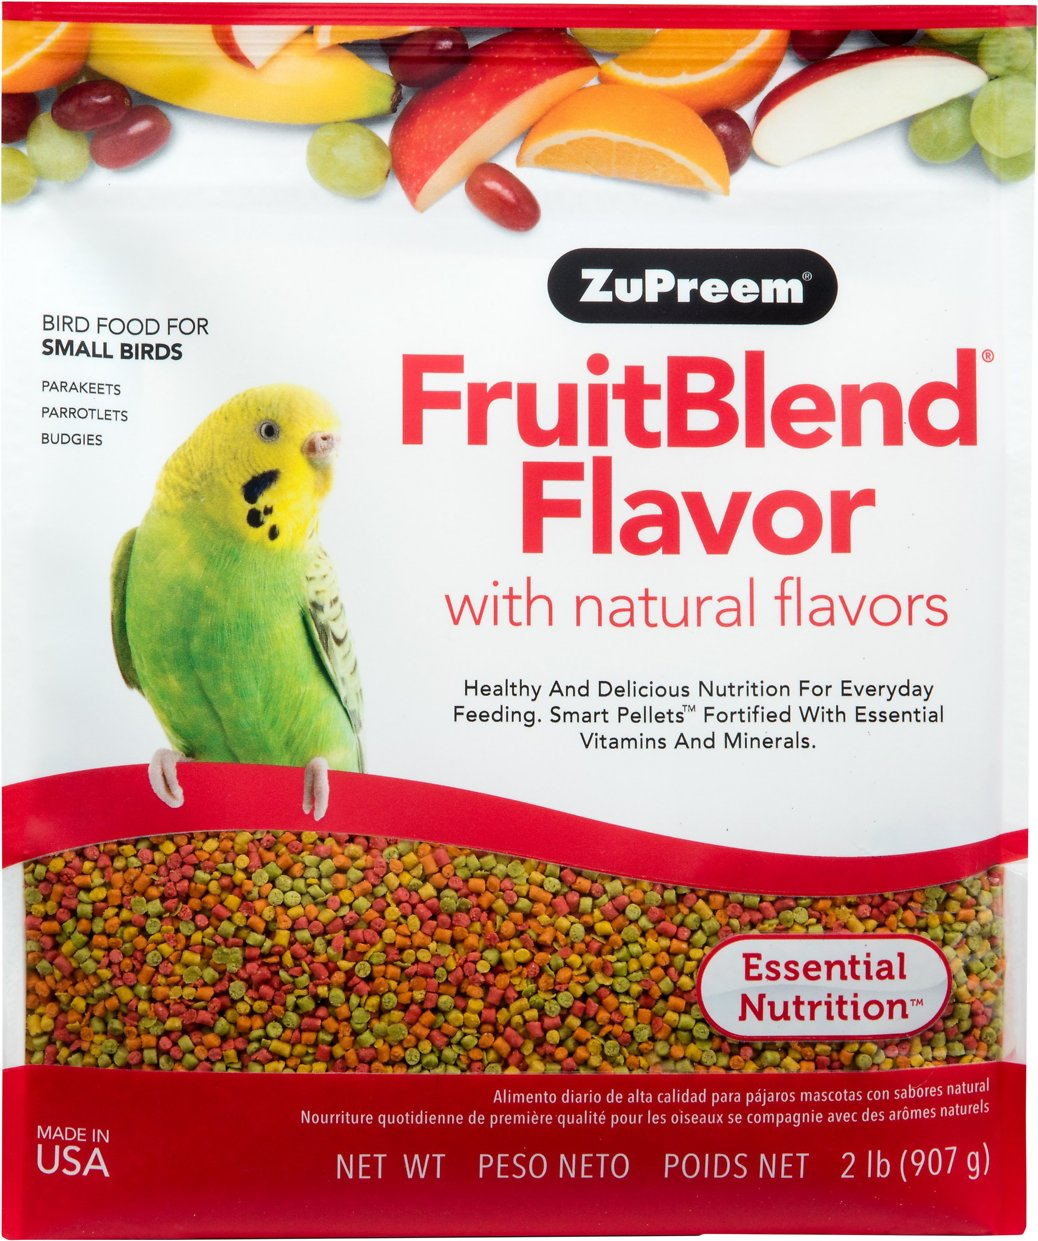 ZuPreem FruitBlend with Natural Fruit Flavors Small Bird Food Image